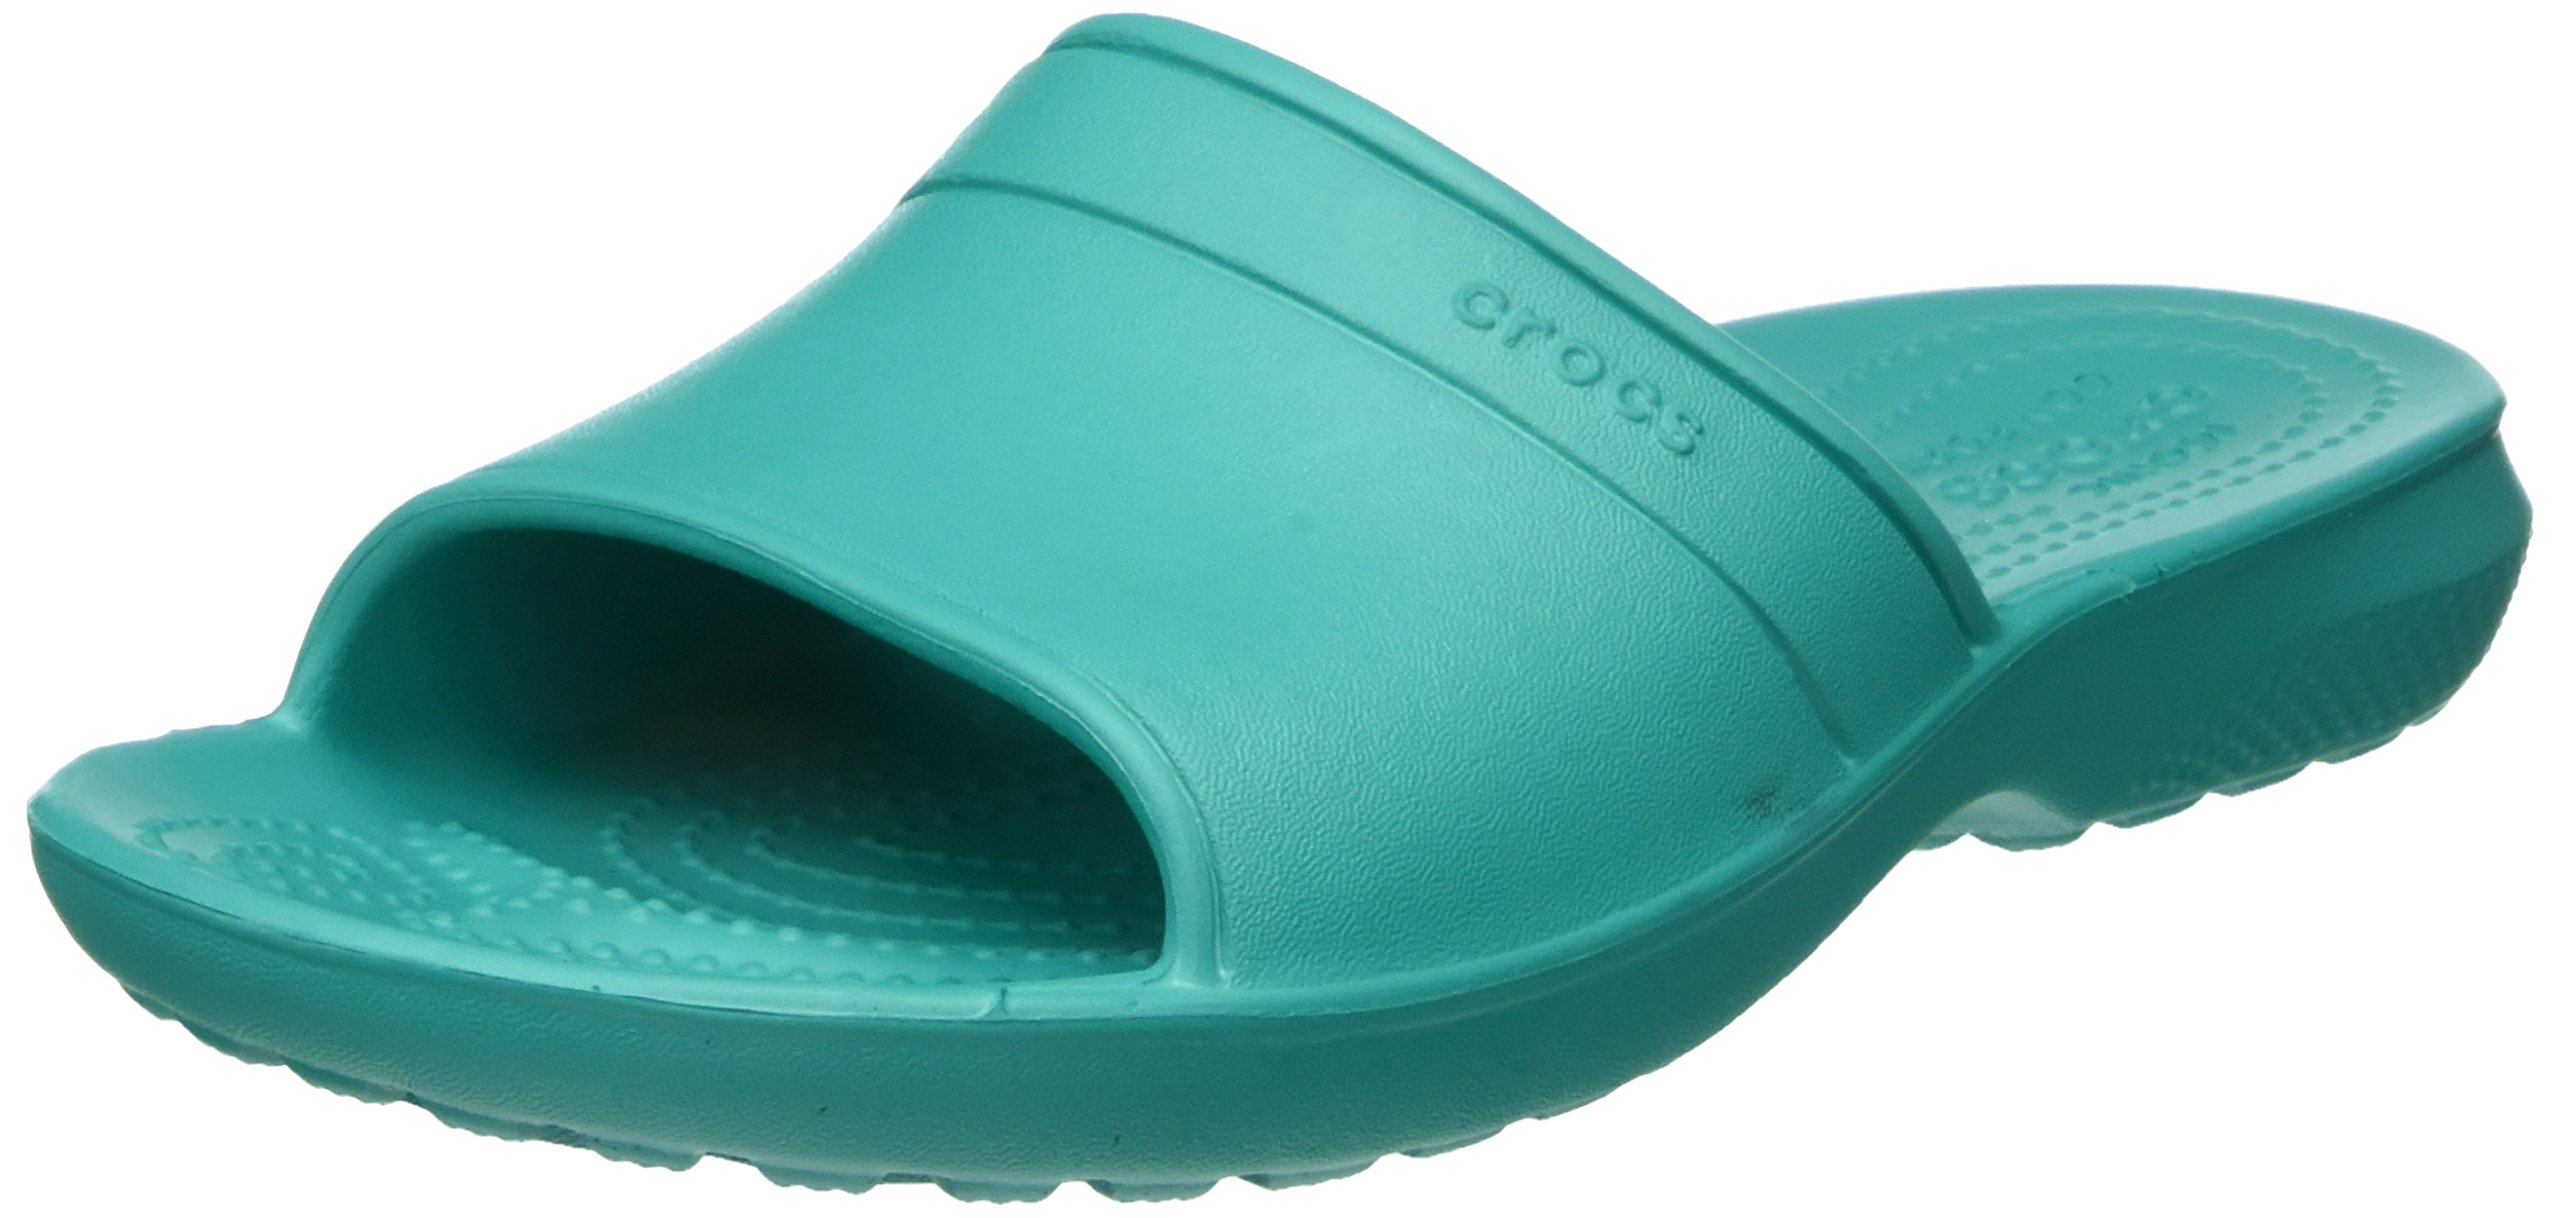 Crocs Classic Slide Sandal, Tropical Teal, 7 US Men/ 9 US Women M US